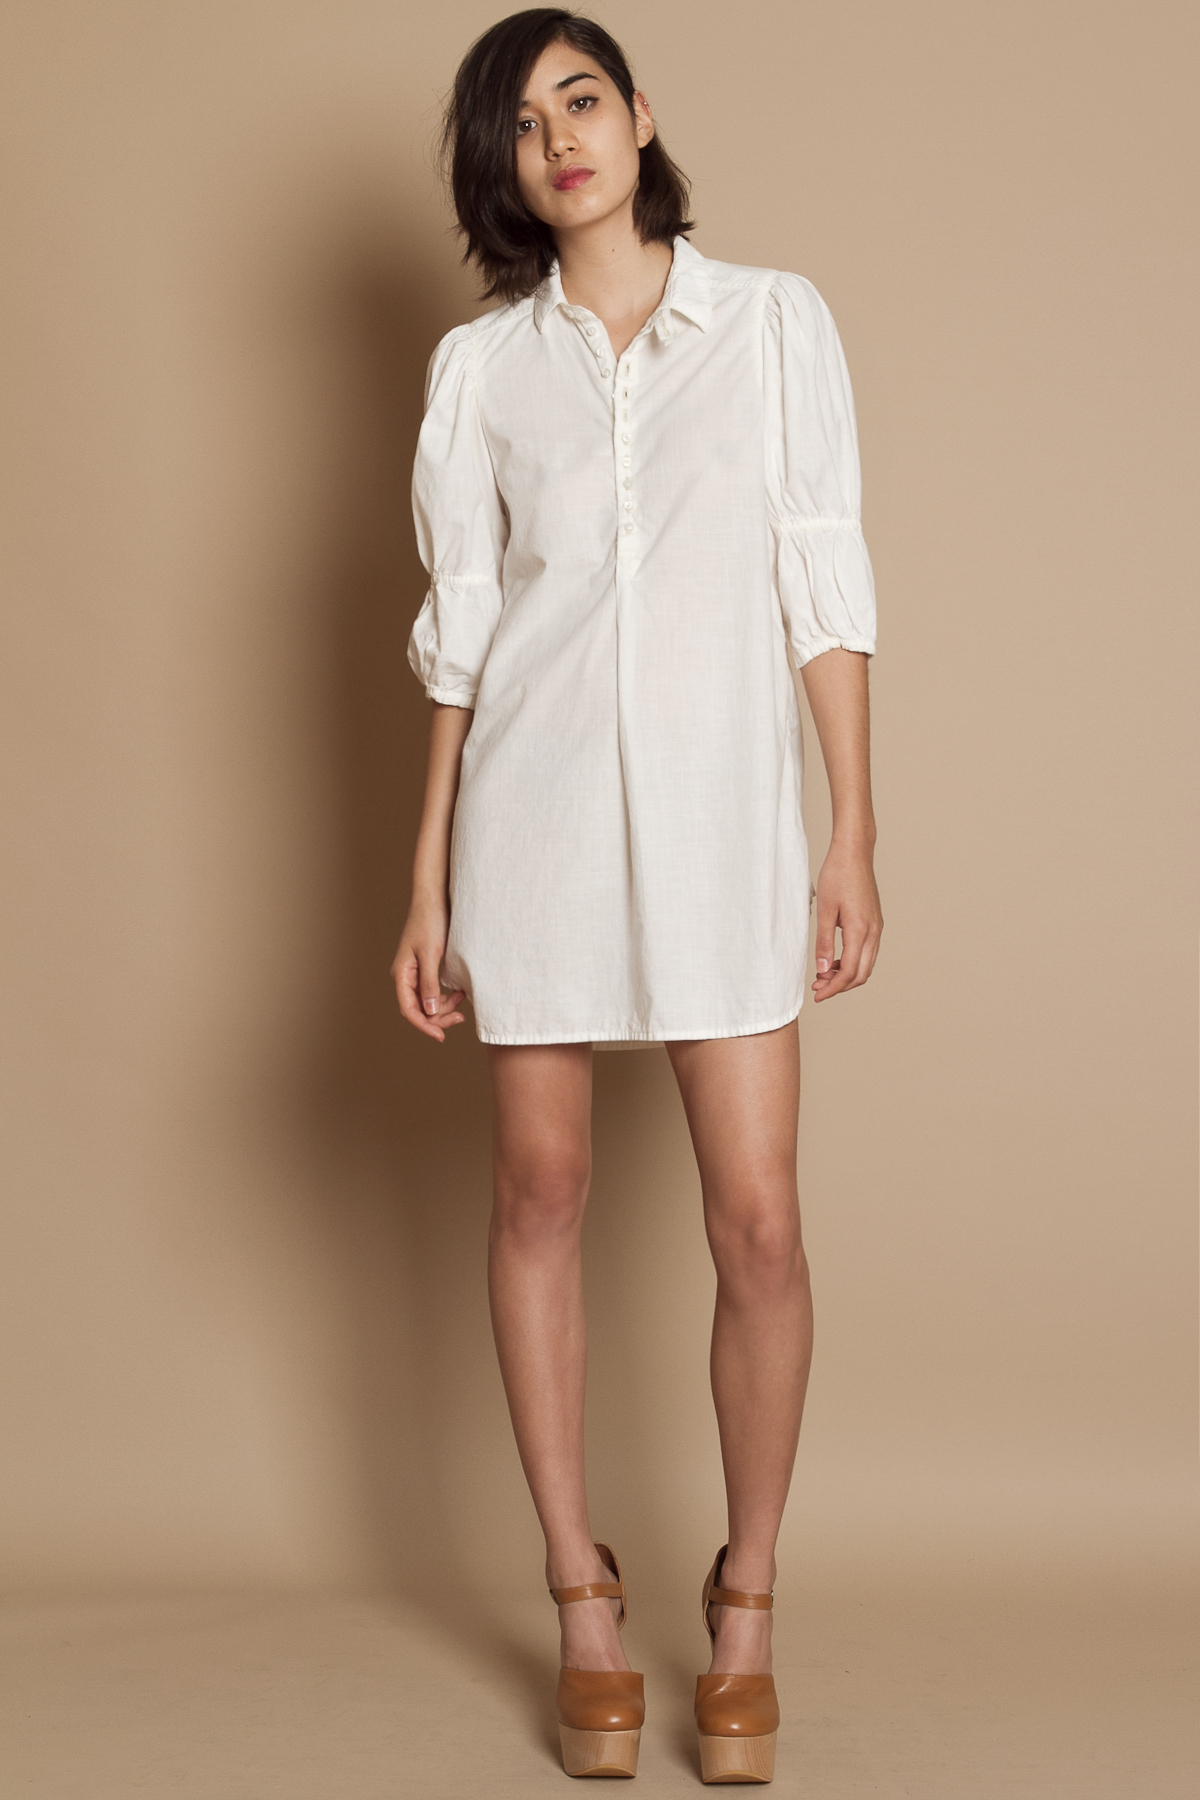 Super versatile and effortlessly chic, shop our range of shirt dresses in classic striped prints, or opt for an oversized